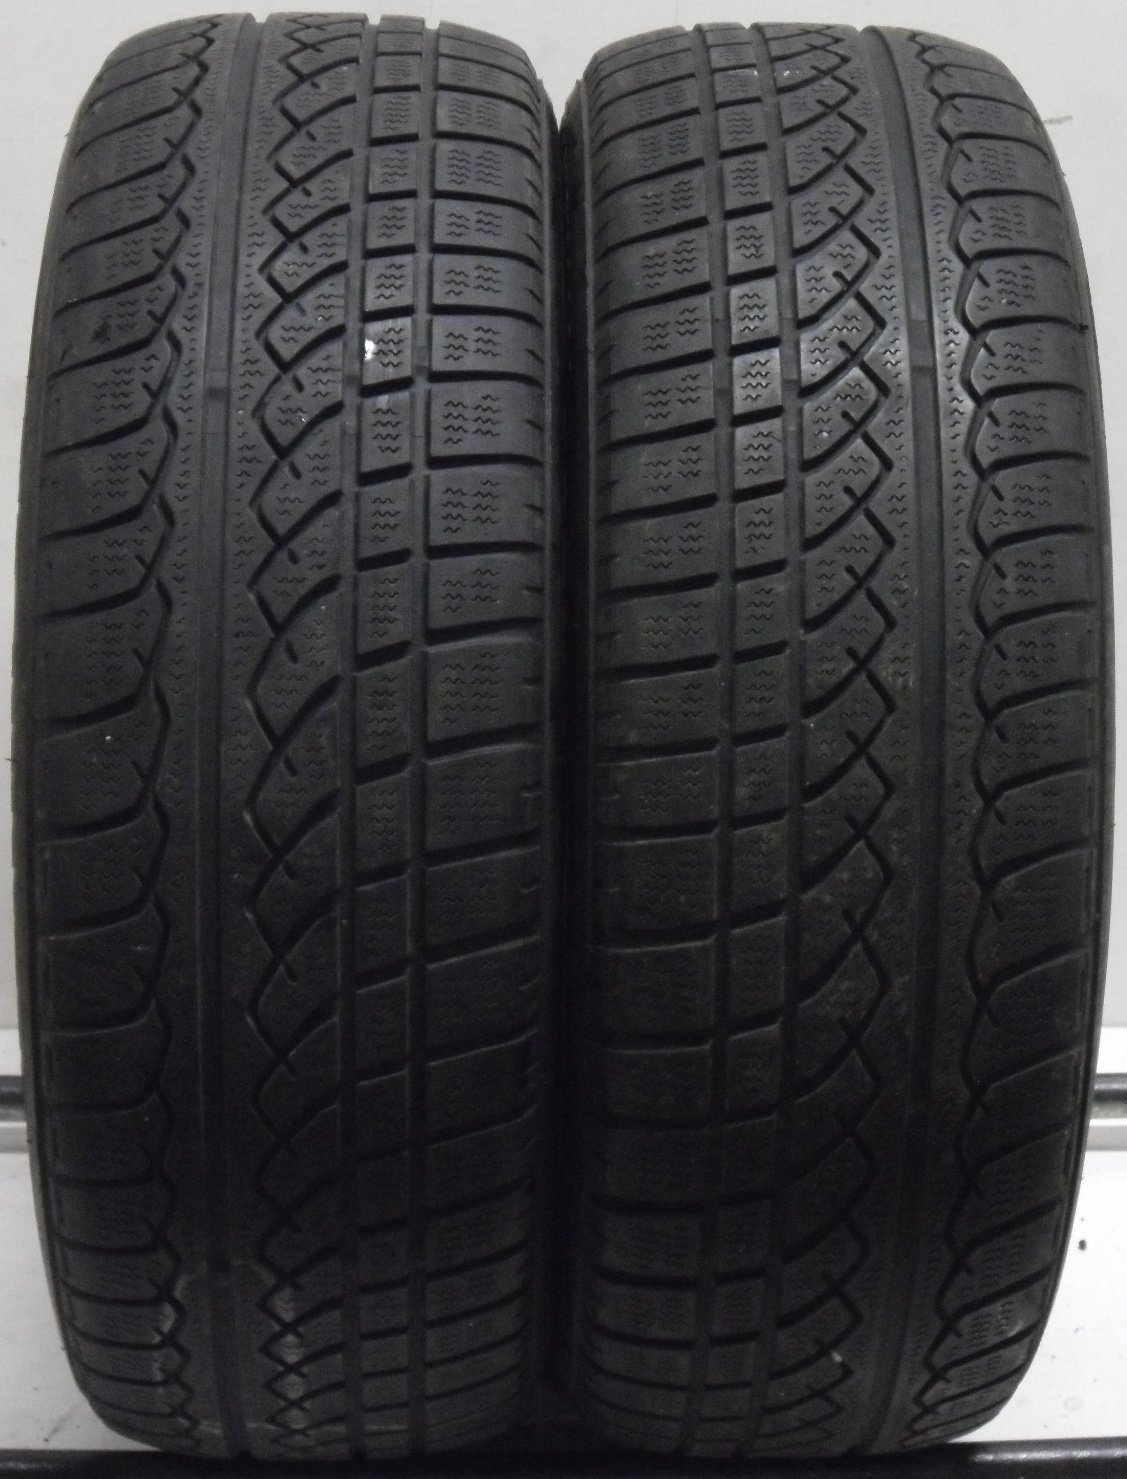 2 2056016 Yokohama 205 60 16 Winter Part Worn Car Tyres AVS x2 Two 4mm to 5mm